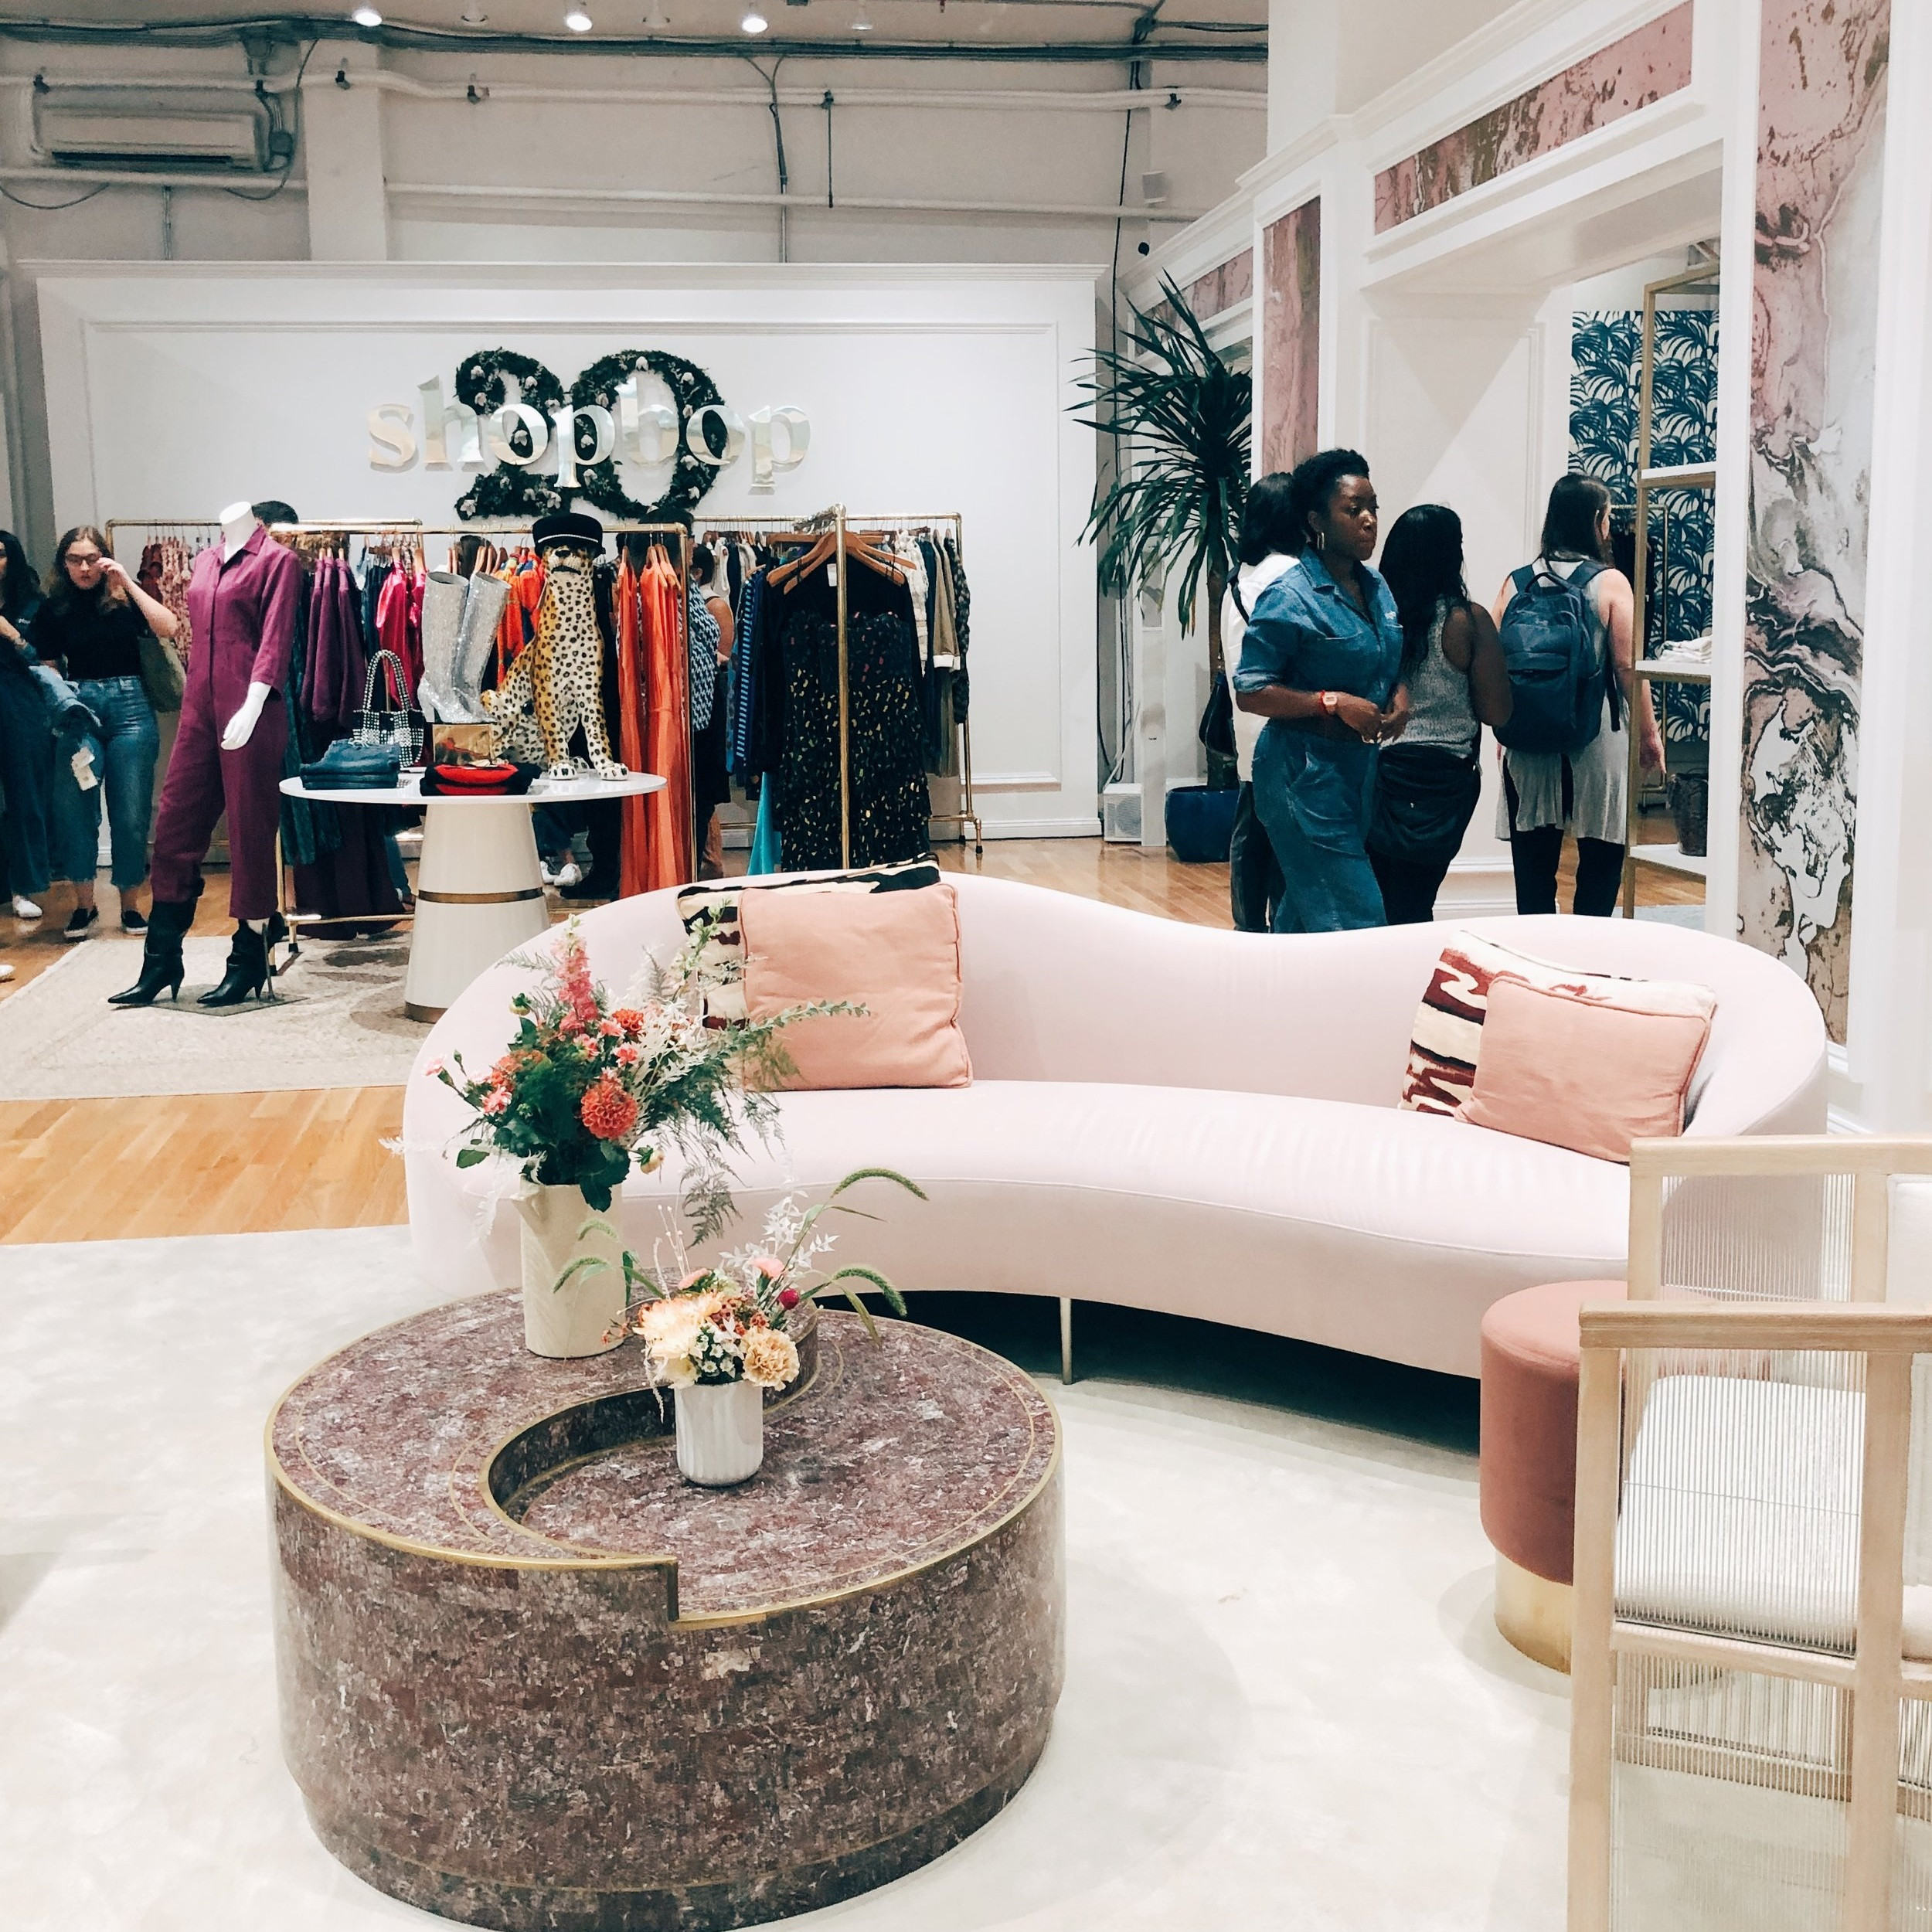 THE RISE OF THE EXPERIENTIAL POP-UP - Experiential continues to win big across adland -- and fashion marketers are making good use of it. Shopbop and Mejuri pop-ups are among the most popular events that influencers planned on attending during NYFW. The brands have deliberately (and unapologetically) designed these spaces to be Instagram friendly. Influencers are swarming like bees to honey.